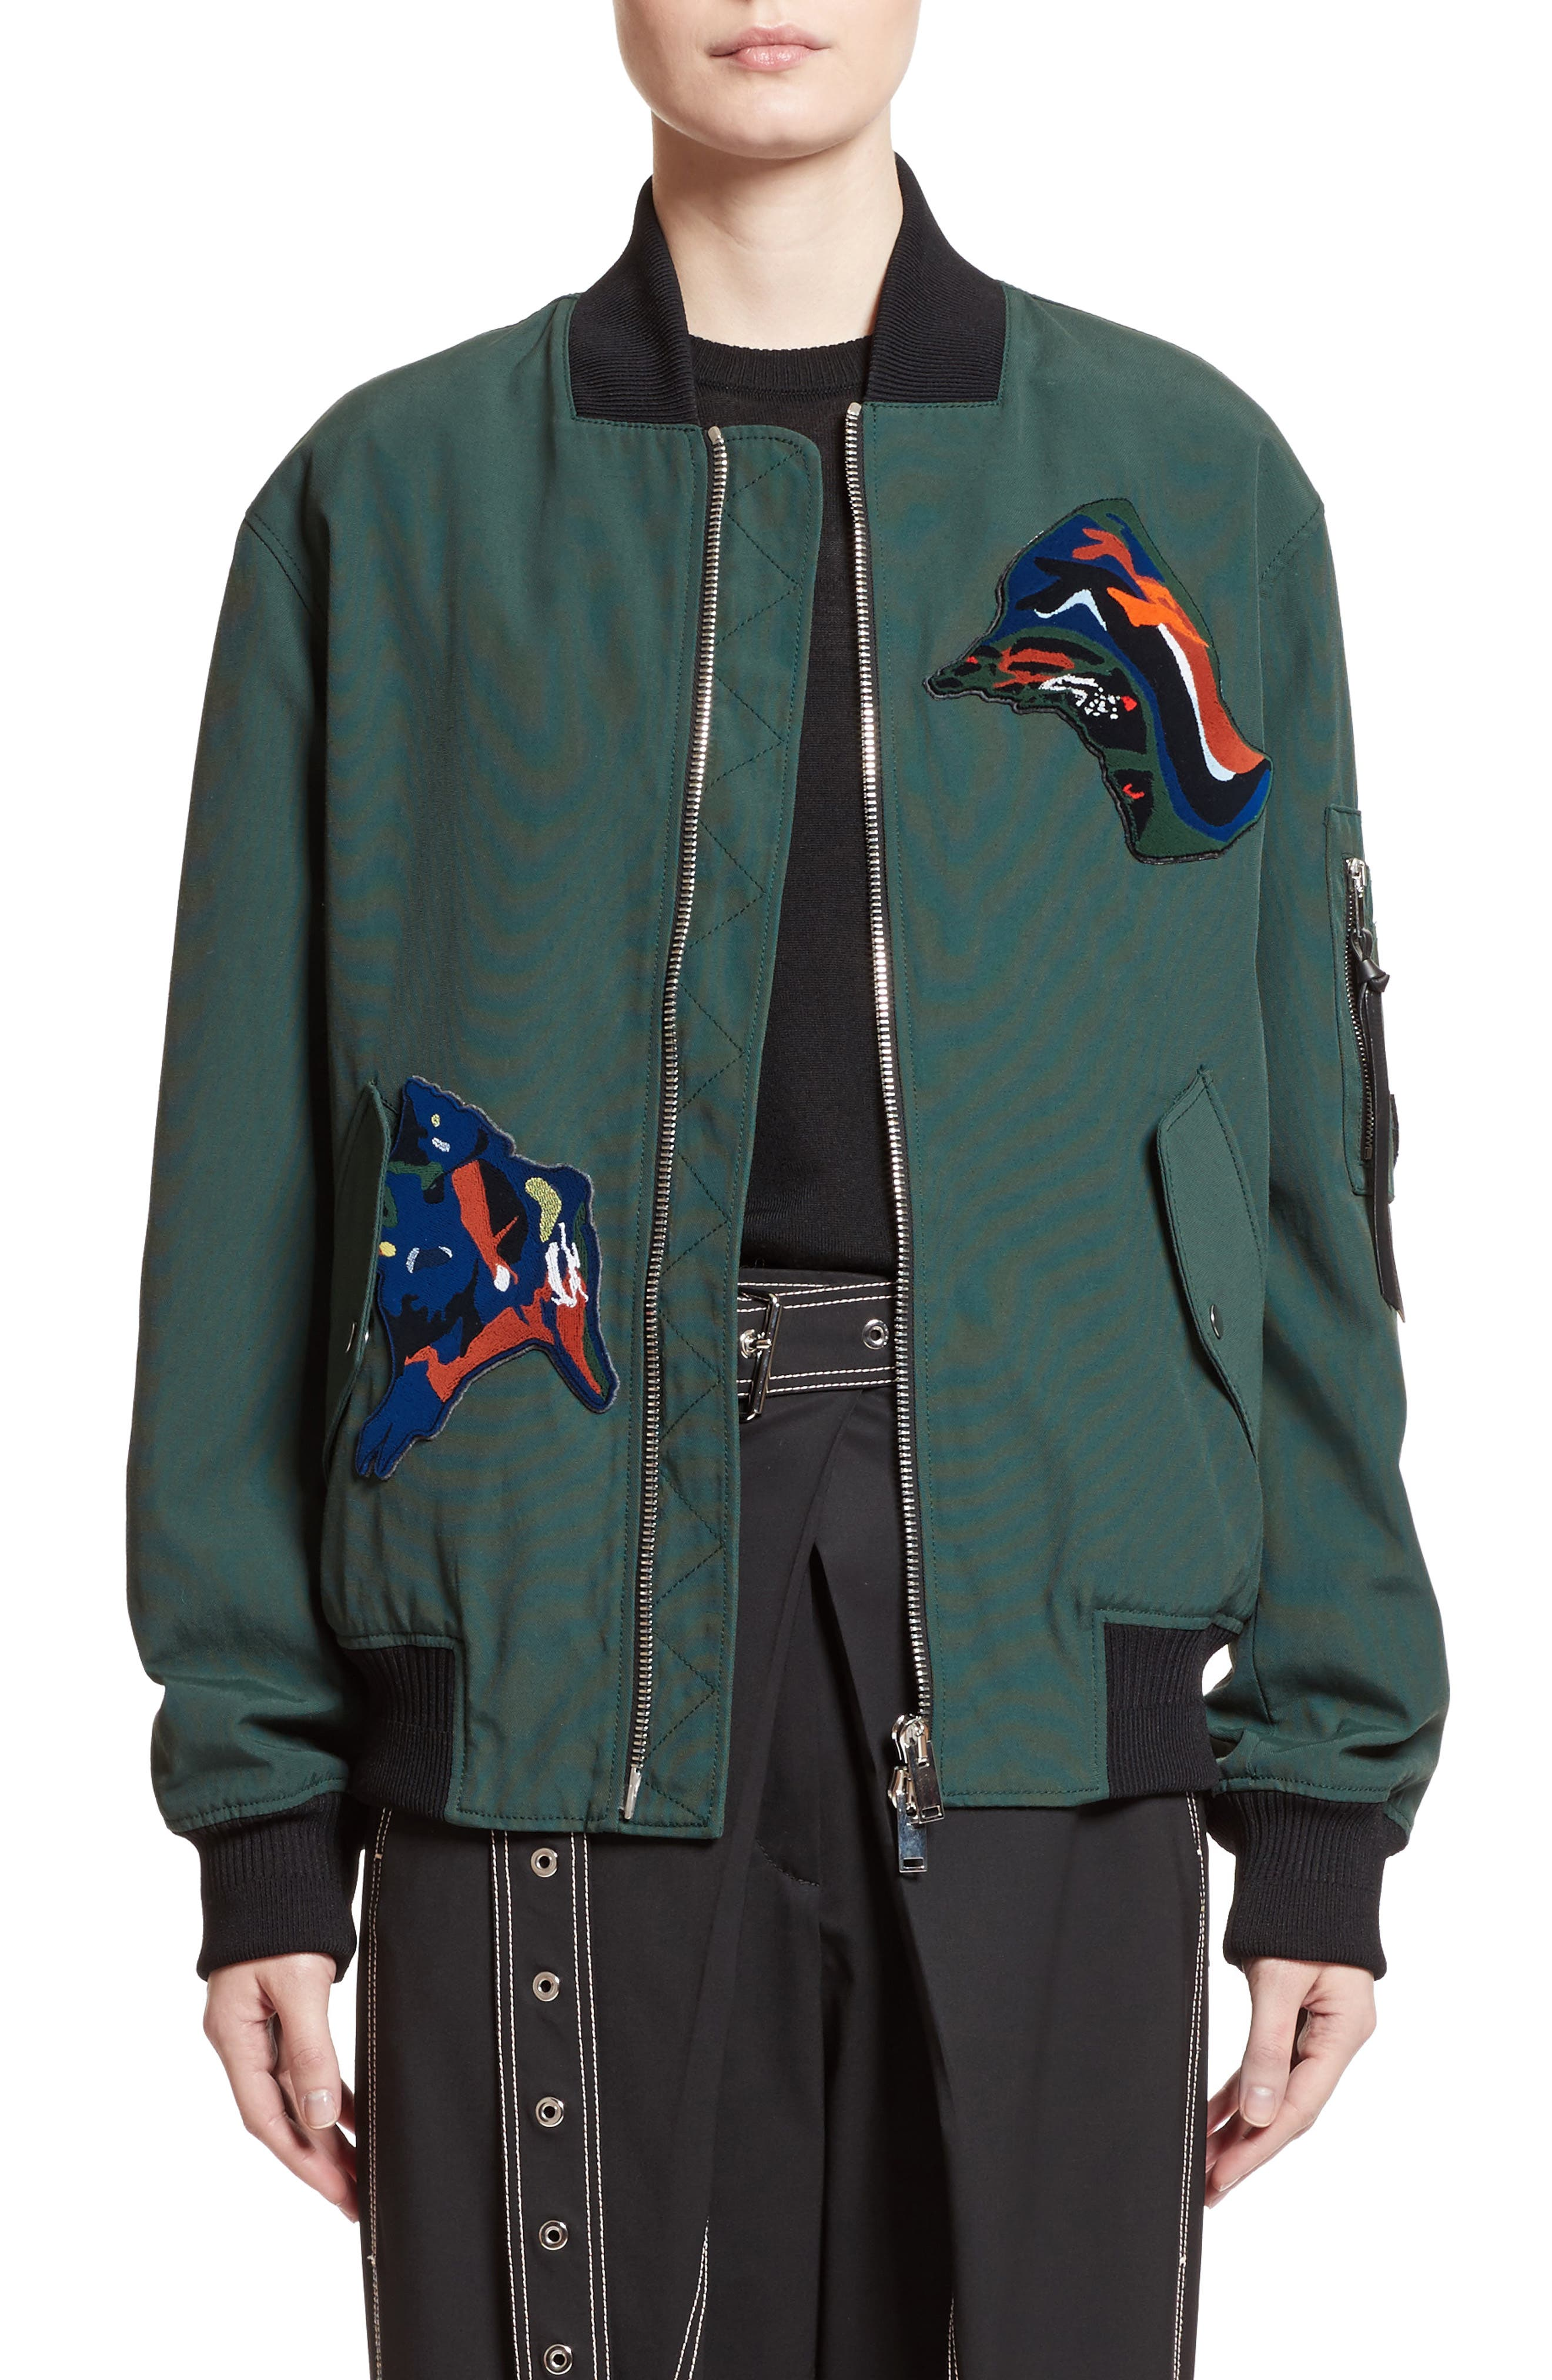 Patch Embellished Bomber Jacket,                             Main thumbnail 1, color,                             Deep Pine